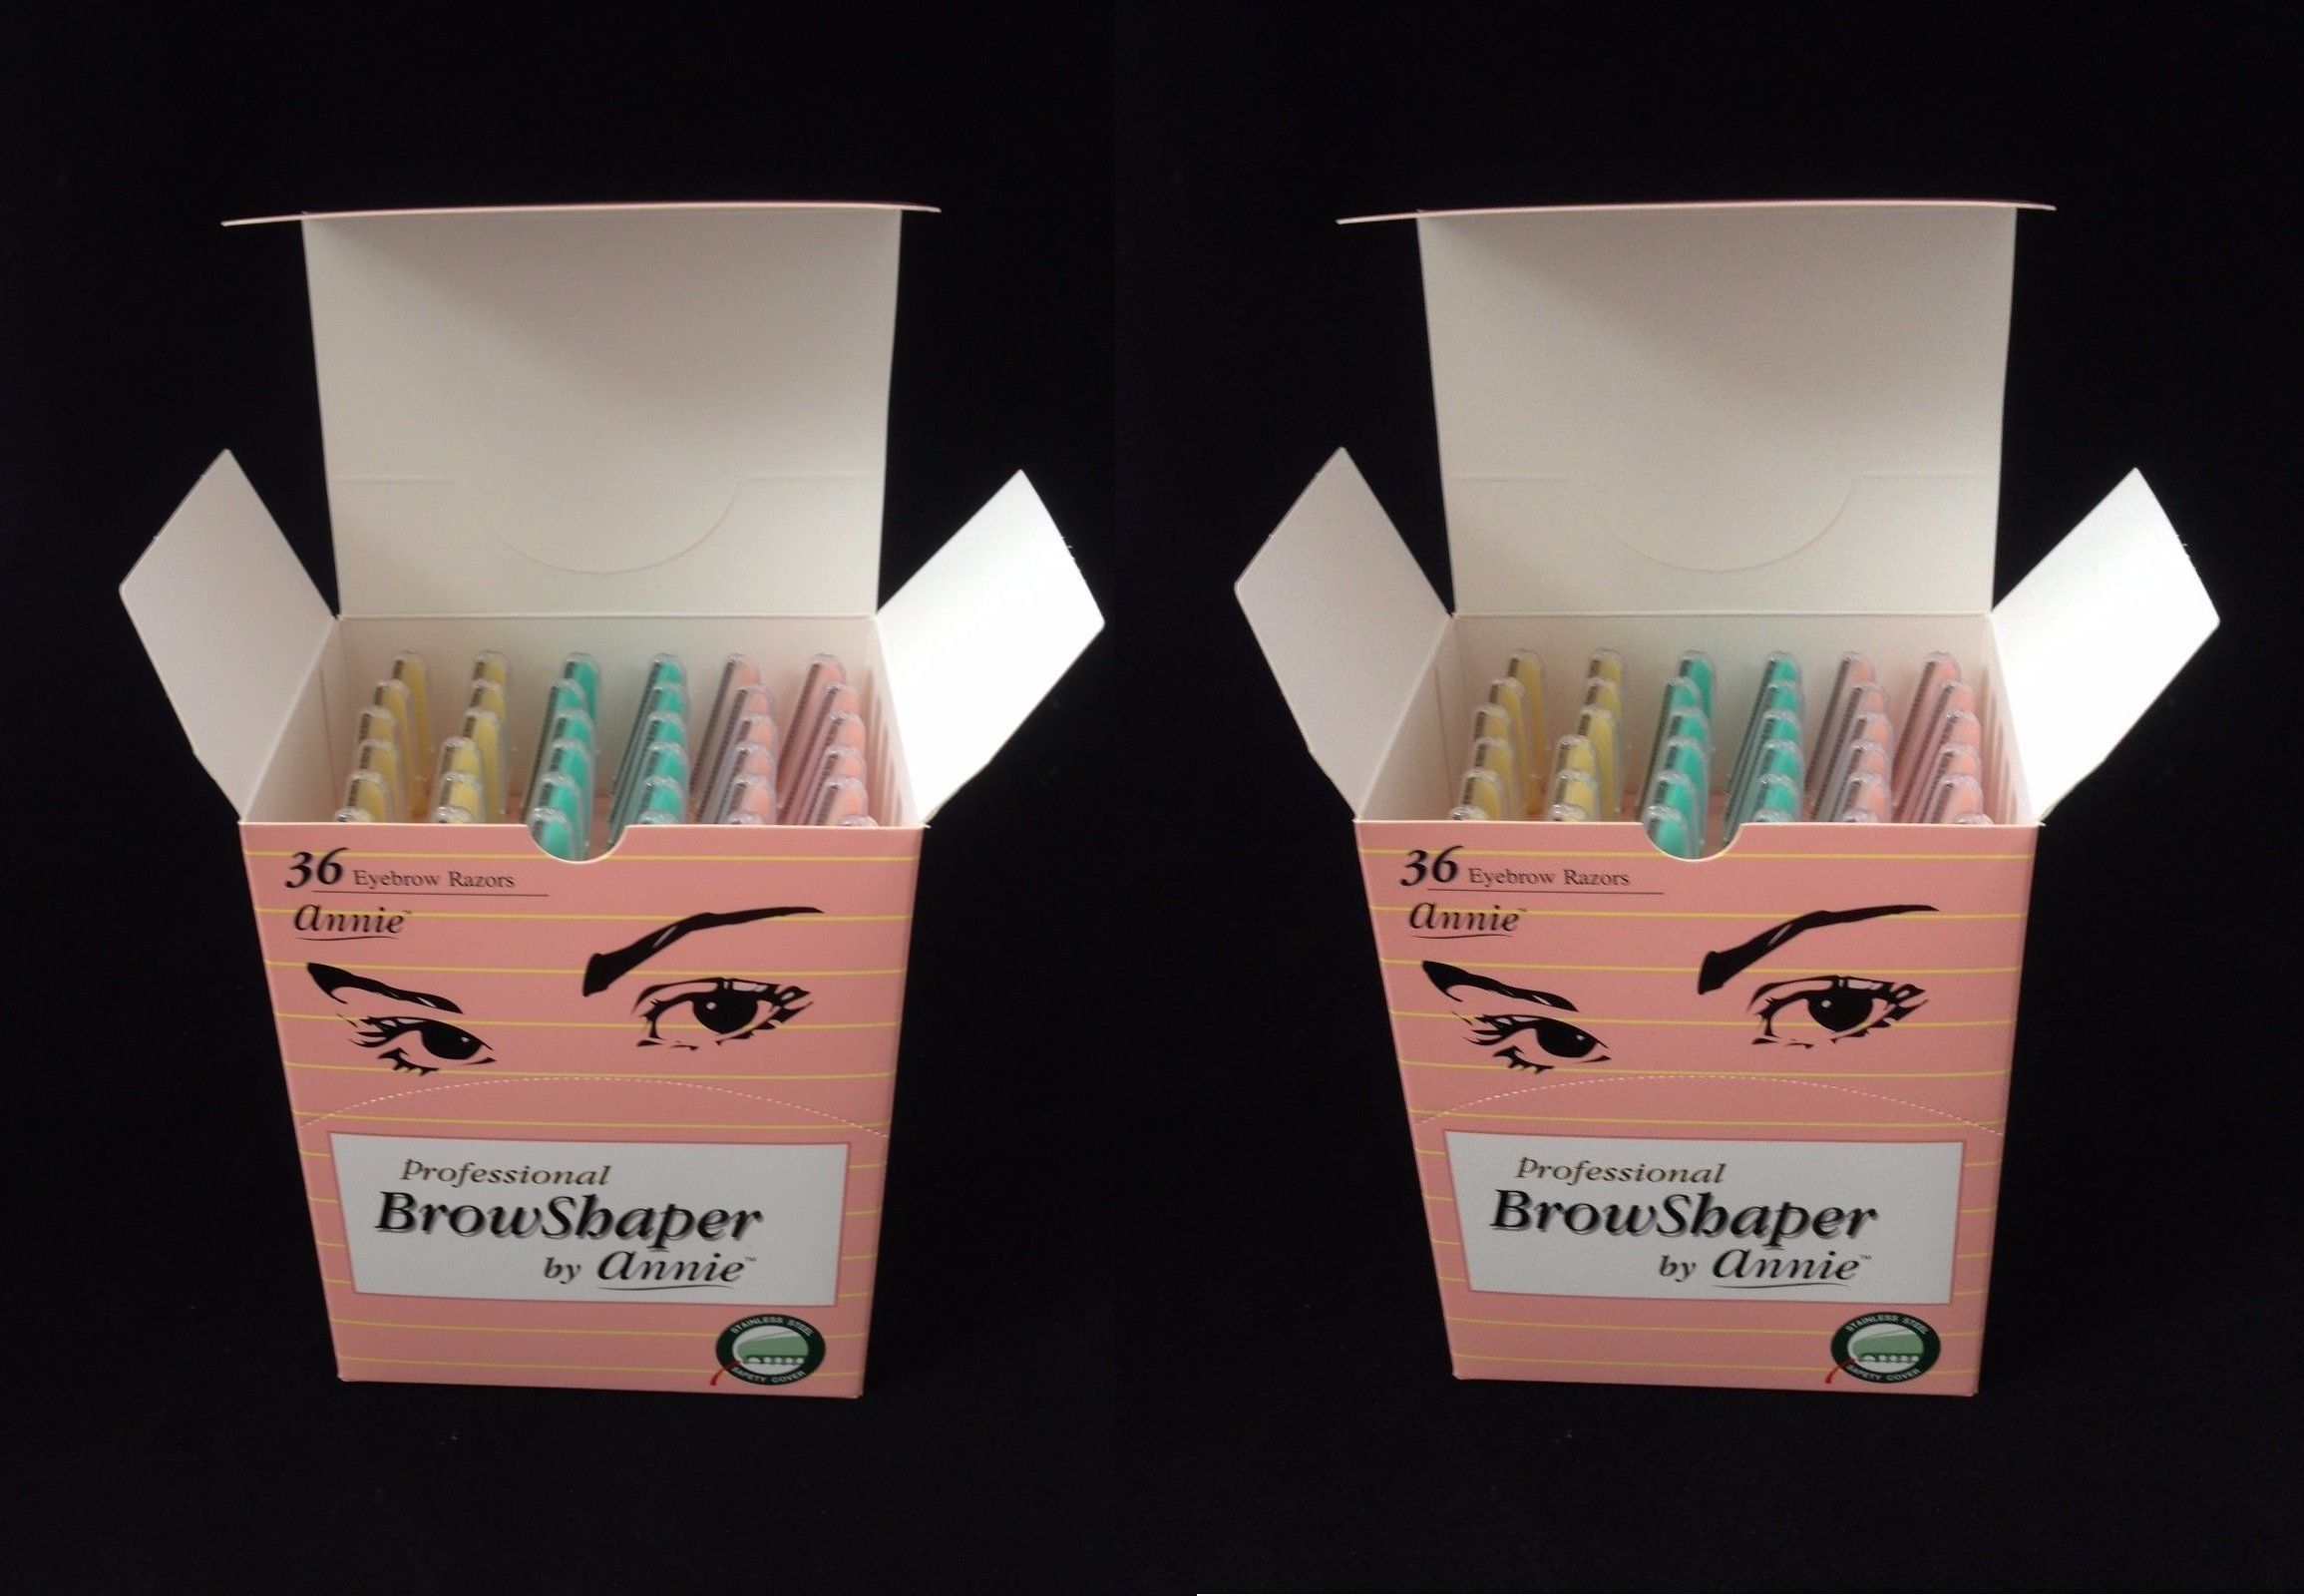 (PACK OF 2) ANNIE EYEBROW SHAPER RAZOR DISPLAY #5131 (36PC)